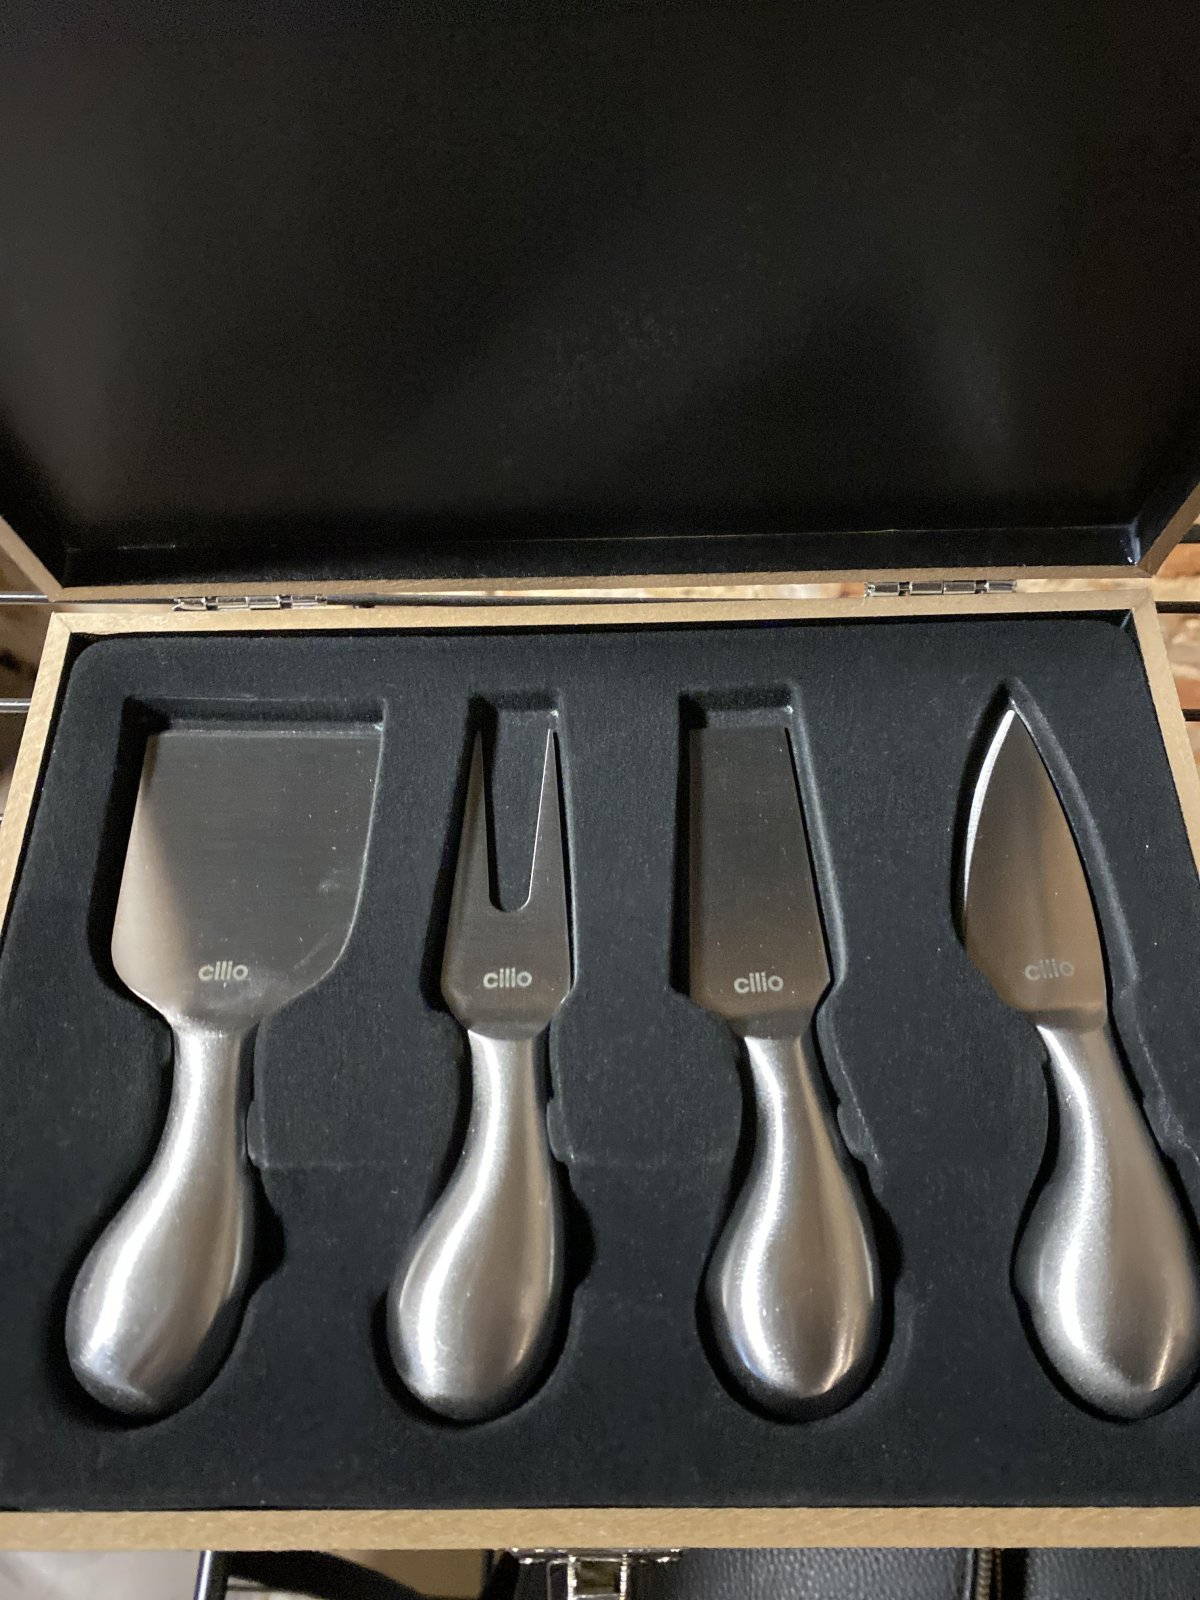 Cilio Cheese Knives set 4pc